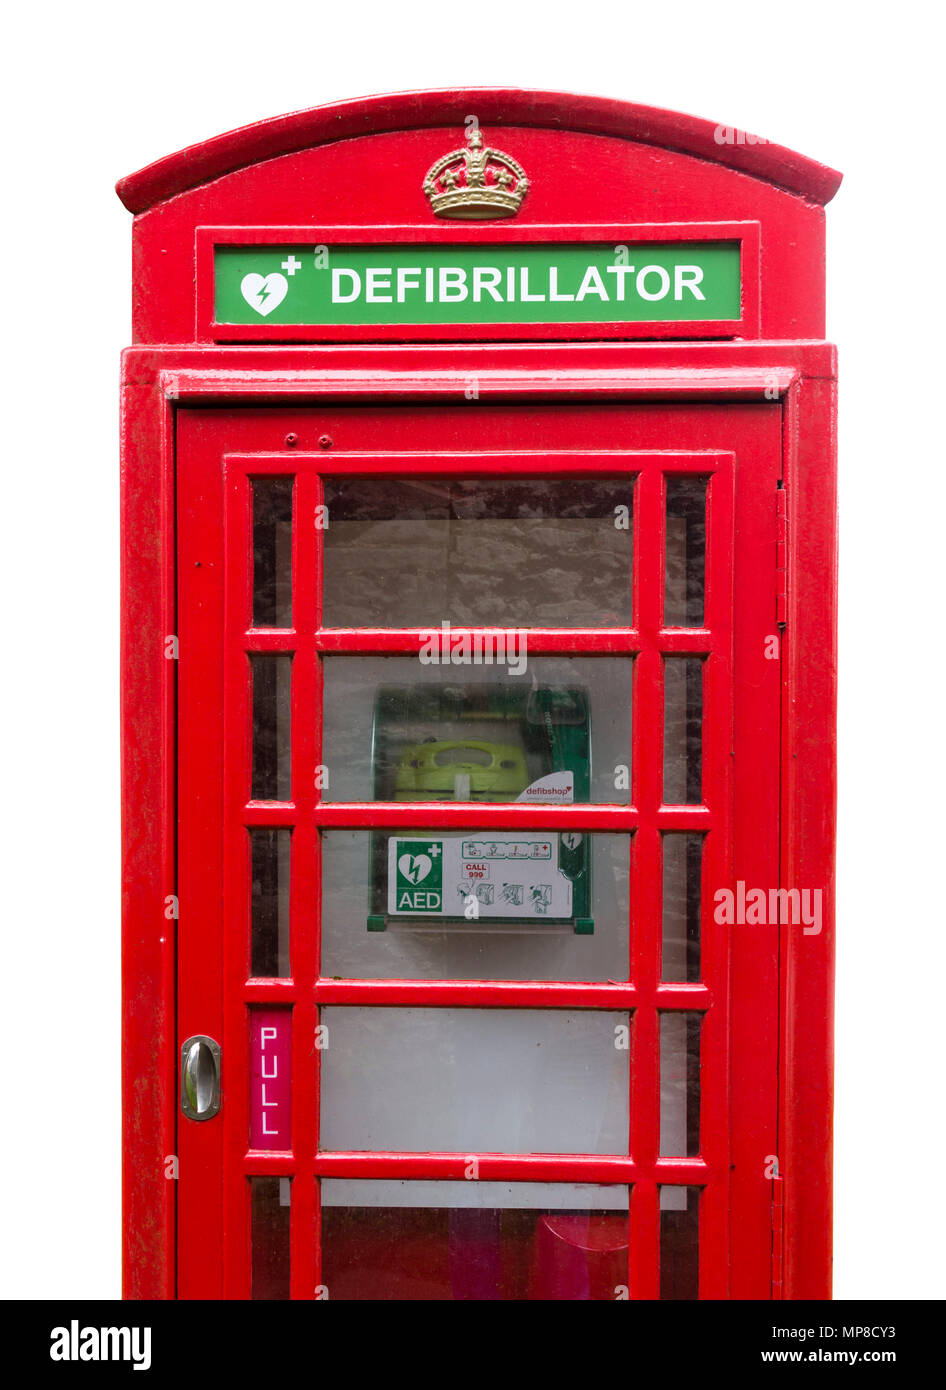 Defibrillator. An old red telephone box being used to house a public defribillator, Sheldon, Derbyshire, England, UK - Stock Image